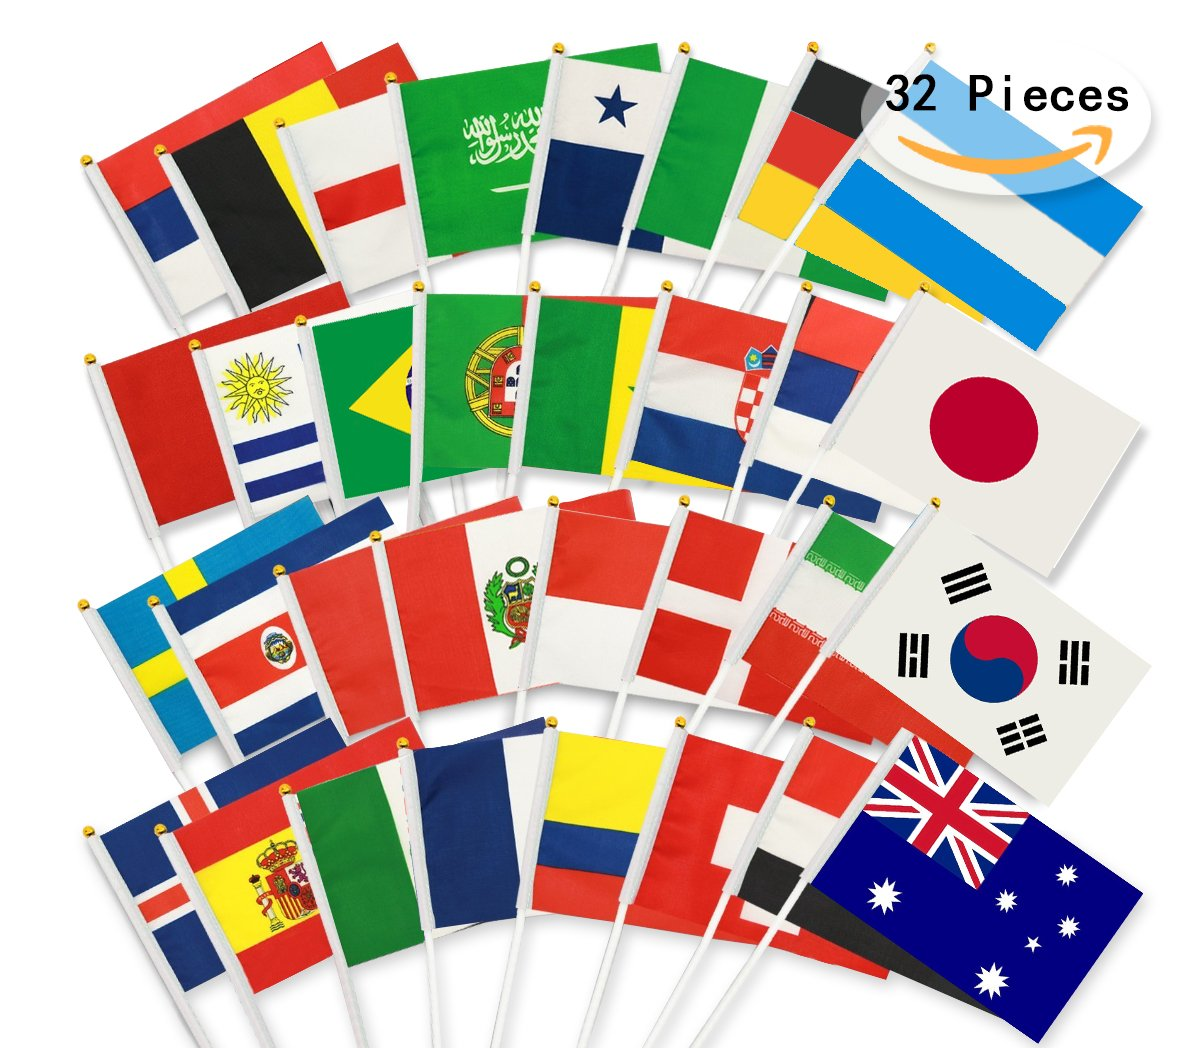 Bemomo 32pcs World Cup Hand Waving Flags, Russia 2018 World Cup Hand Waving Flags, Football Stick Flag Top 32 Nations Fabric Bunting Flags for Football Night, Bar banners,Garden Banners, Party Decoration Bemomo Factory